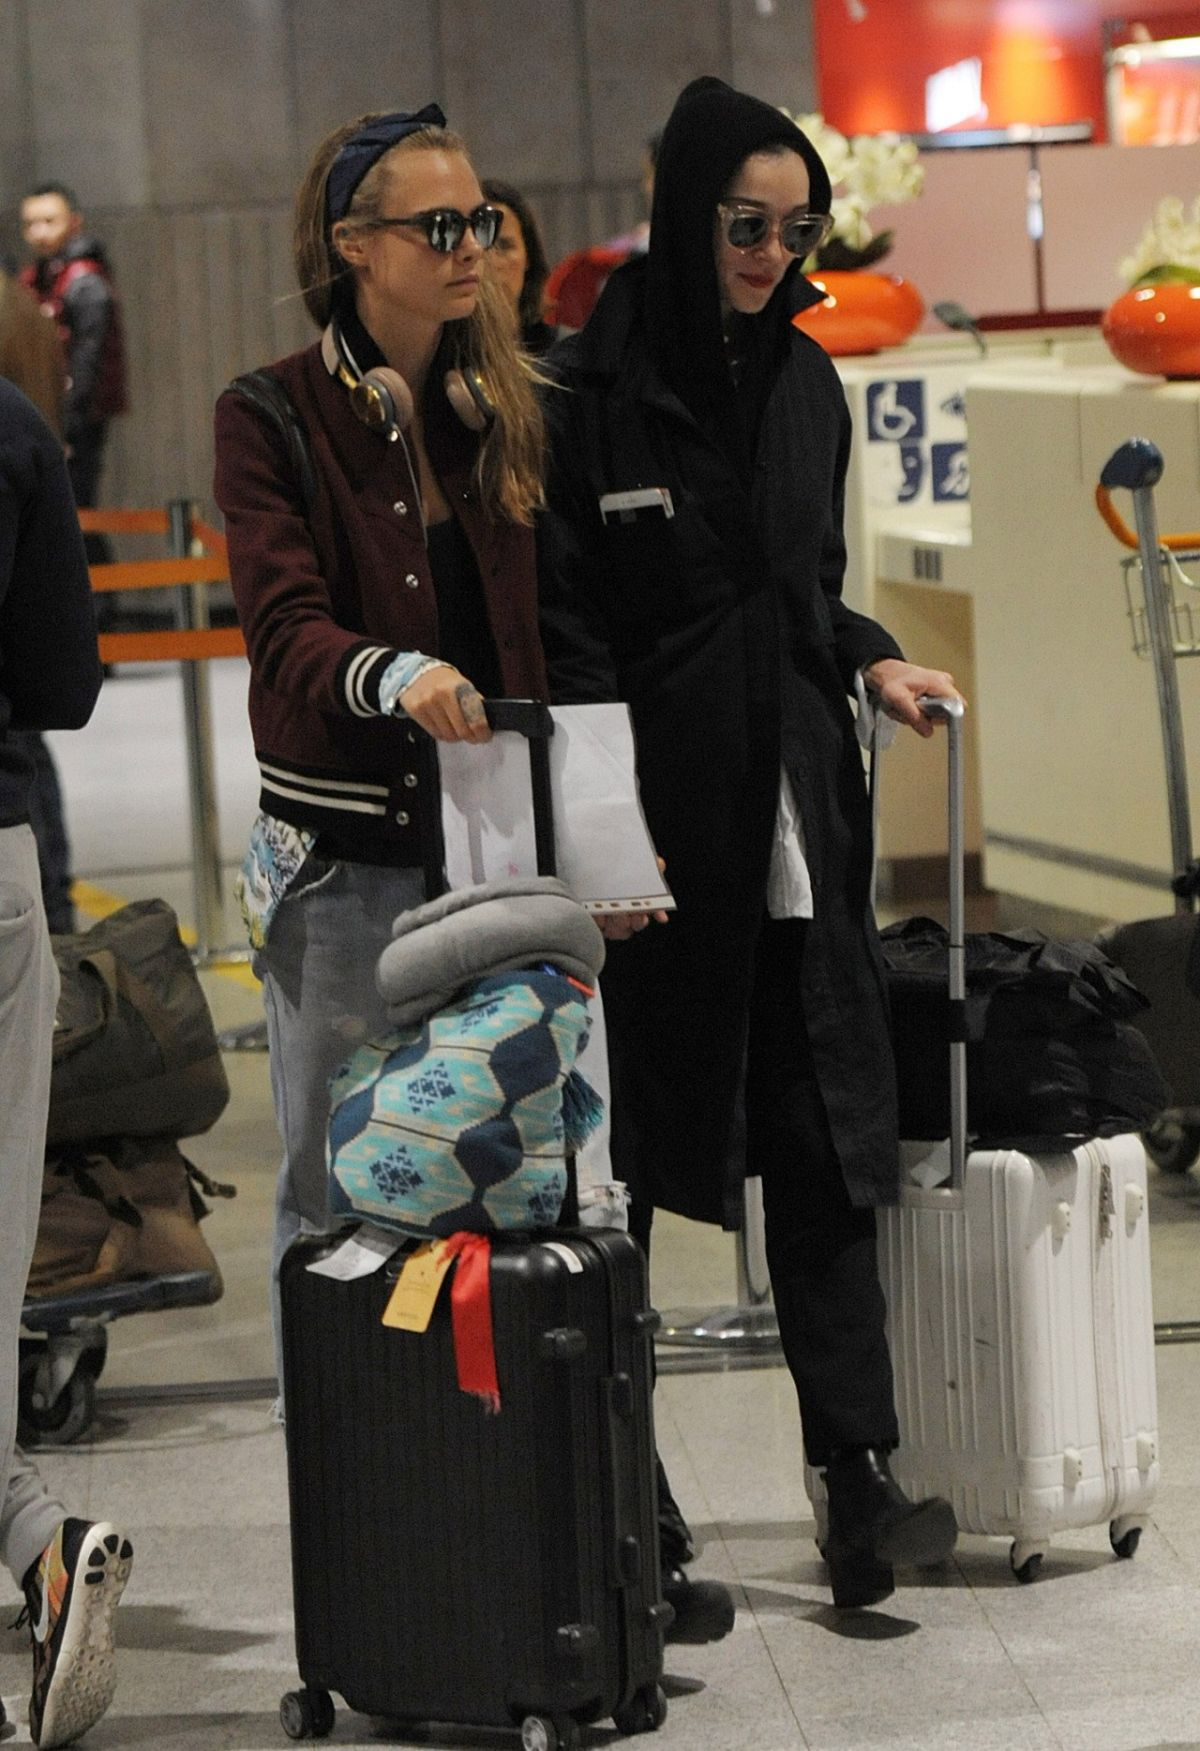 CARA DELEVINGNE and ANNIE CLARK at Charles-De-Gaulle Airport in Paris 02/28/2016